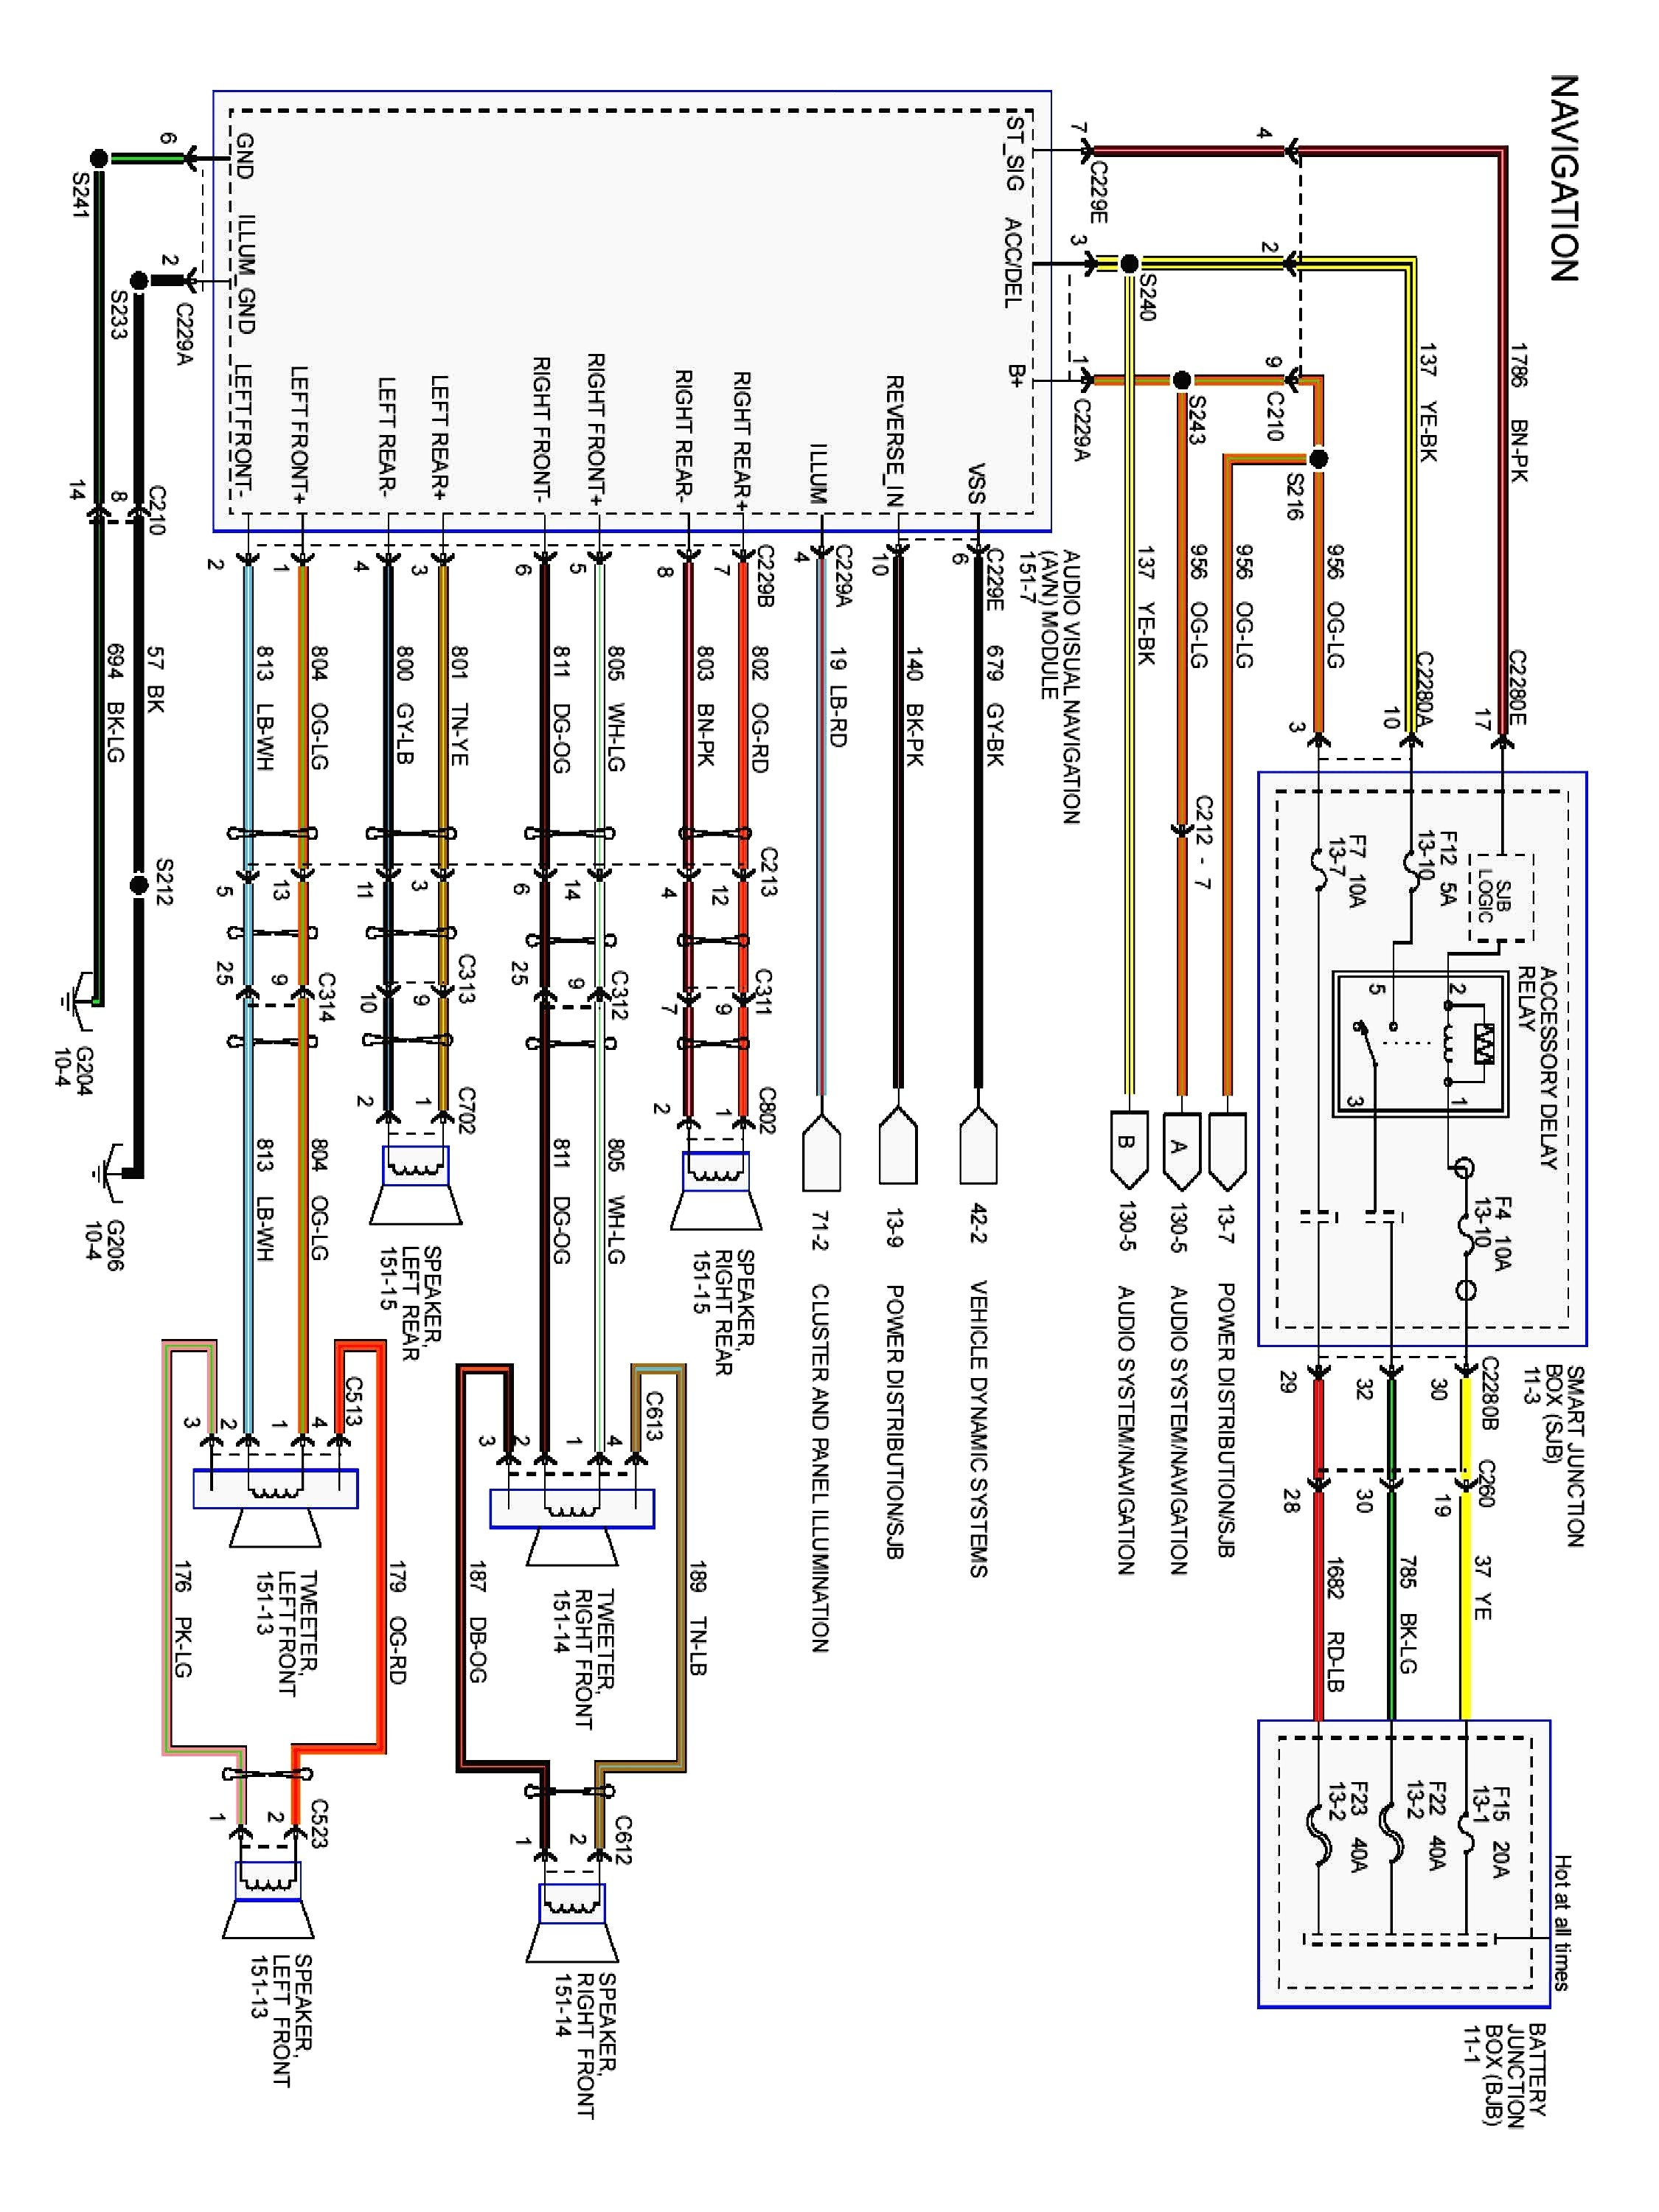 ford e 350 xlt trailer wiring diagram - wiring diagram teach-work-b -  teach-work-b.casatecla.it  casatecla.it